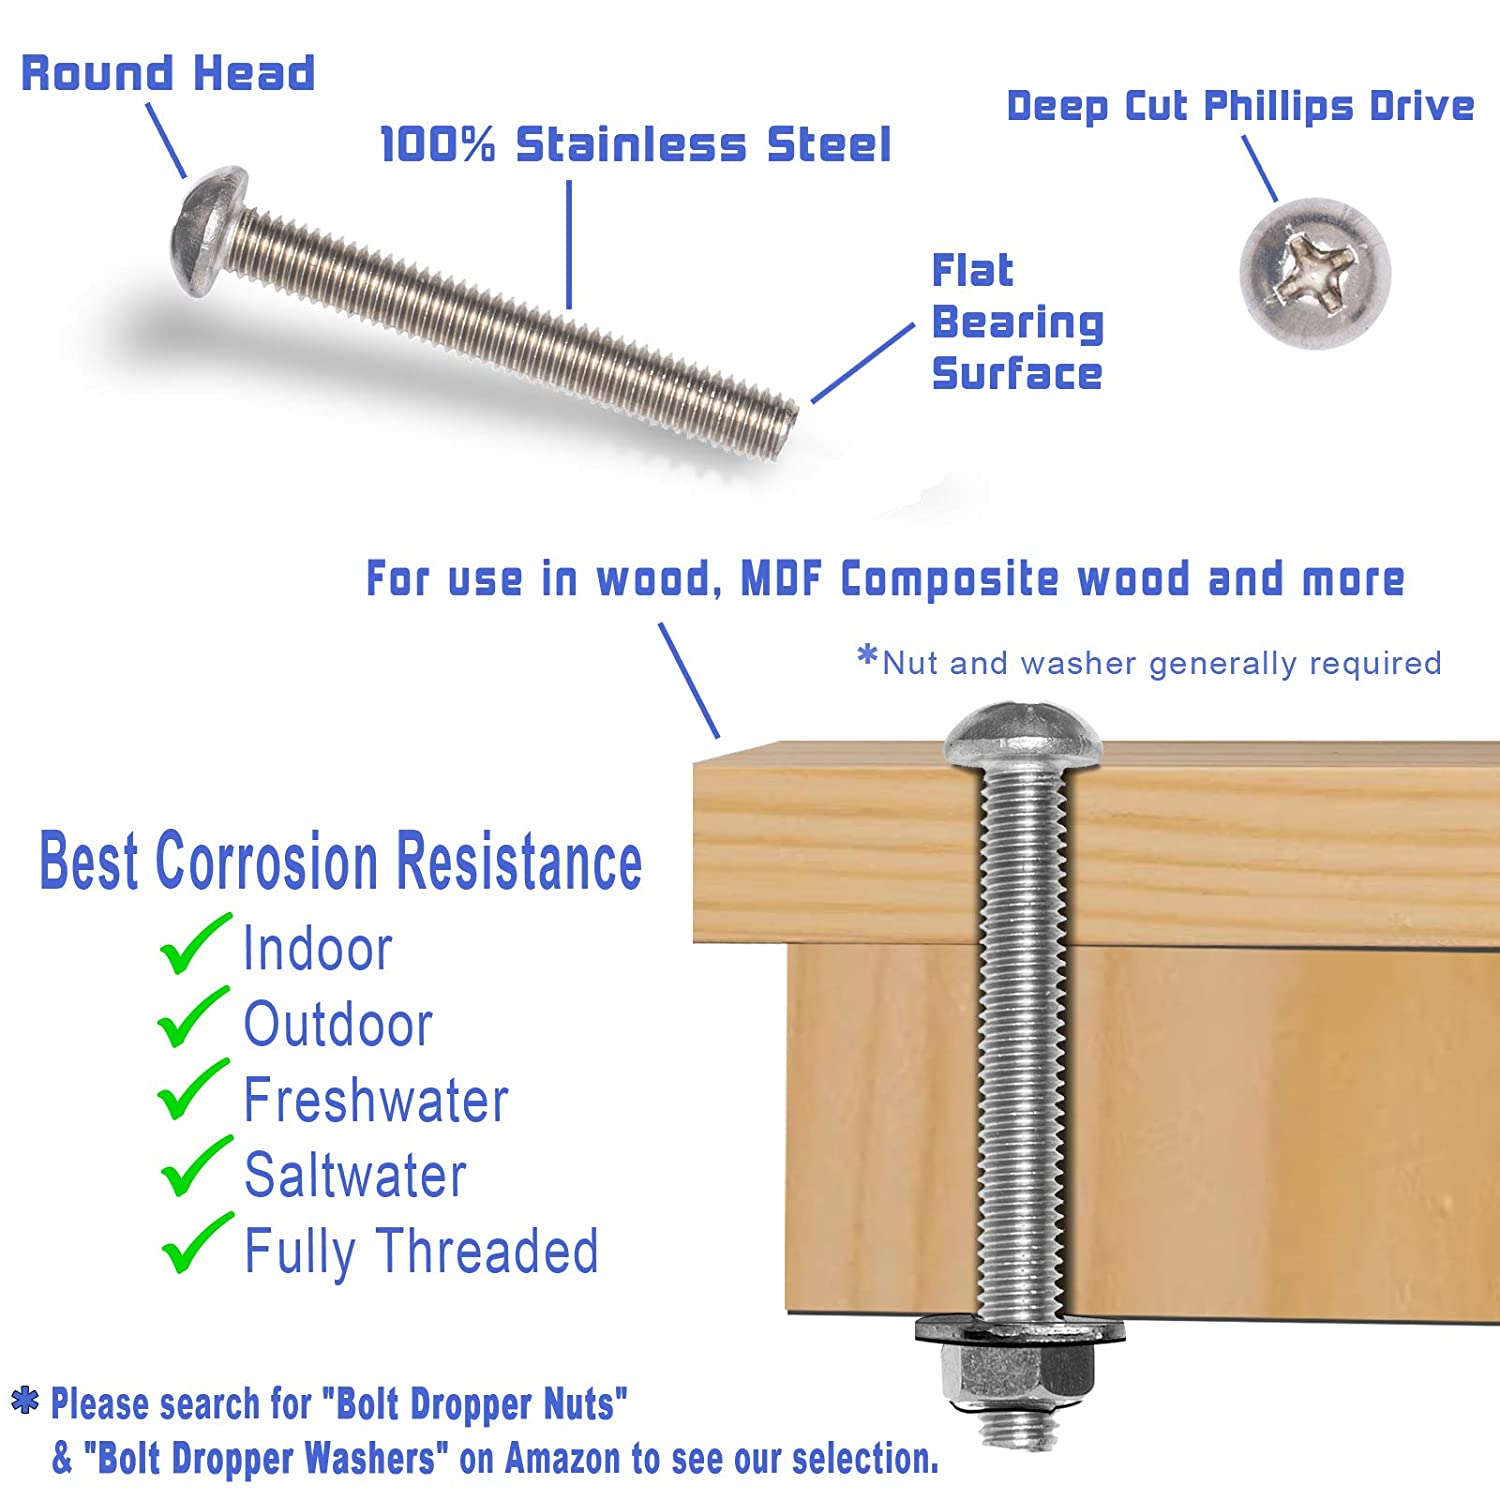 100pc 18-8 304 Coarse Thread by Bolt Dropper #6-32 X 1//2 Stainless Phillips Round Head Machine Screw, Stainless Steel